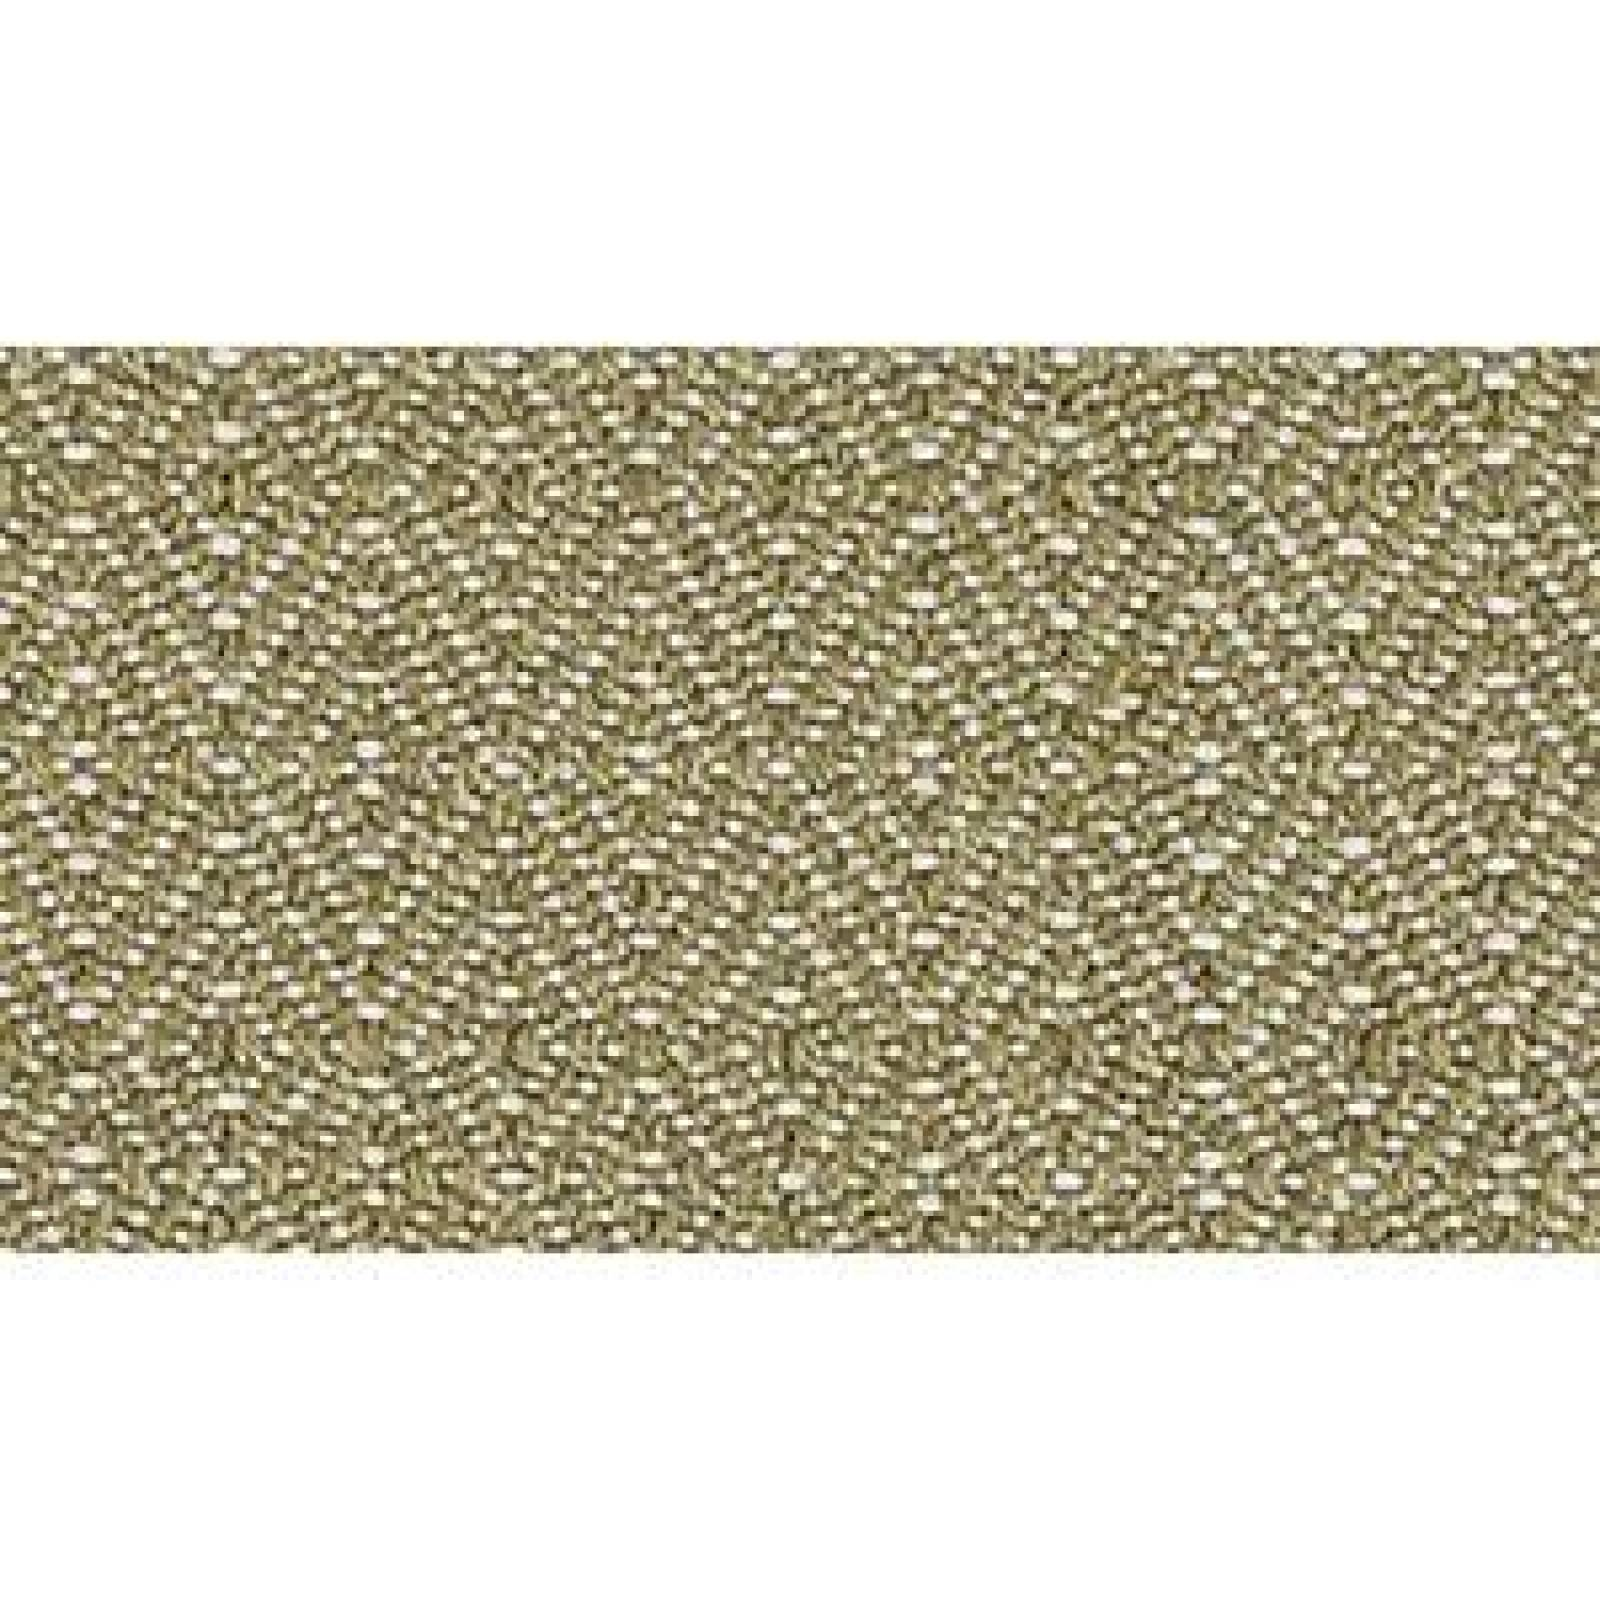 Diamond LICHEN 150cmx90cm Recycled Bottle Rug thumbnails